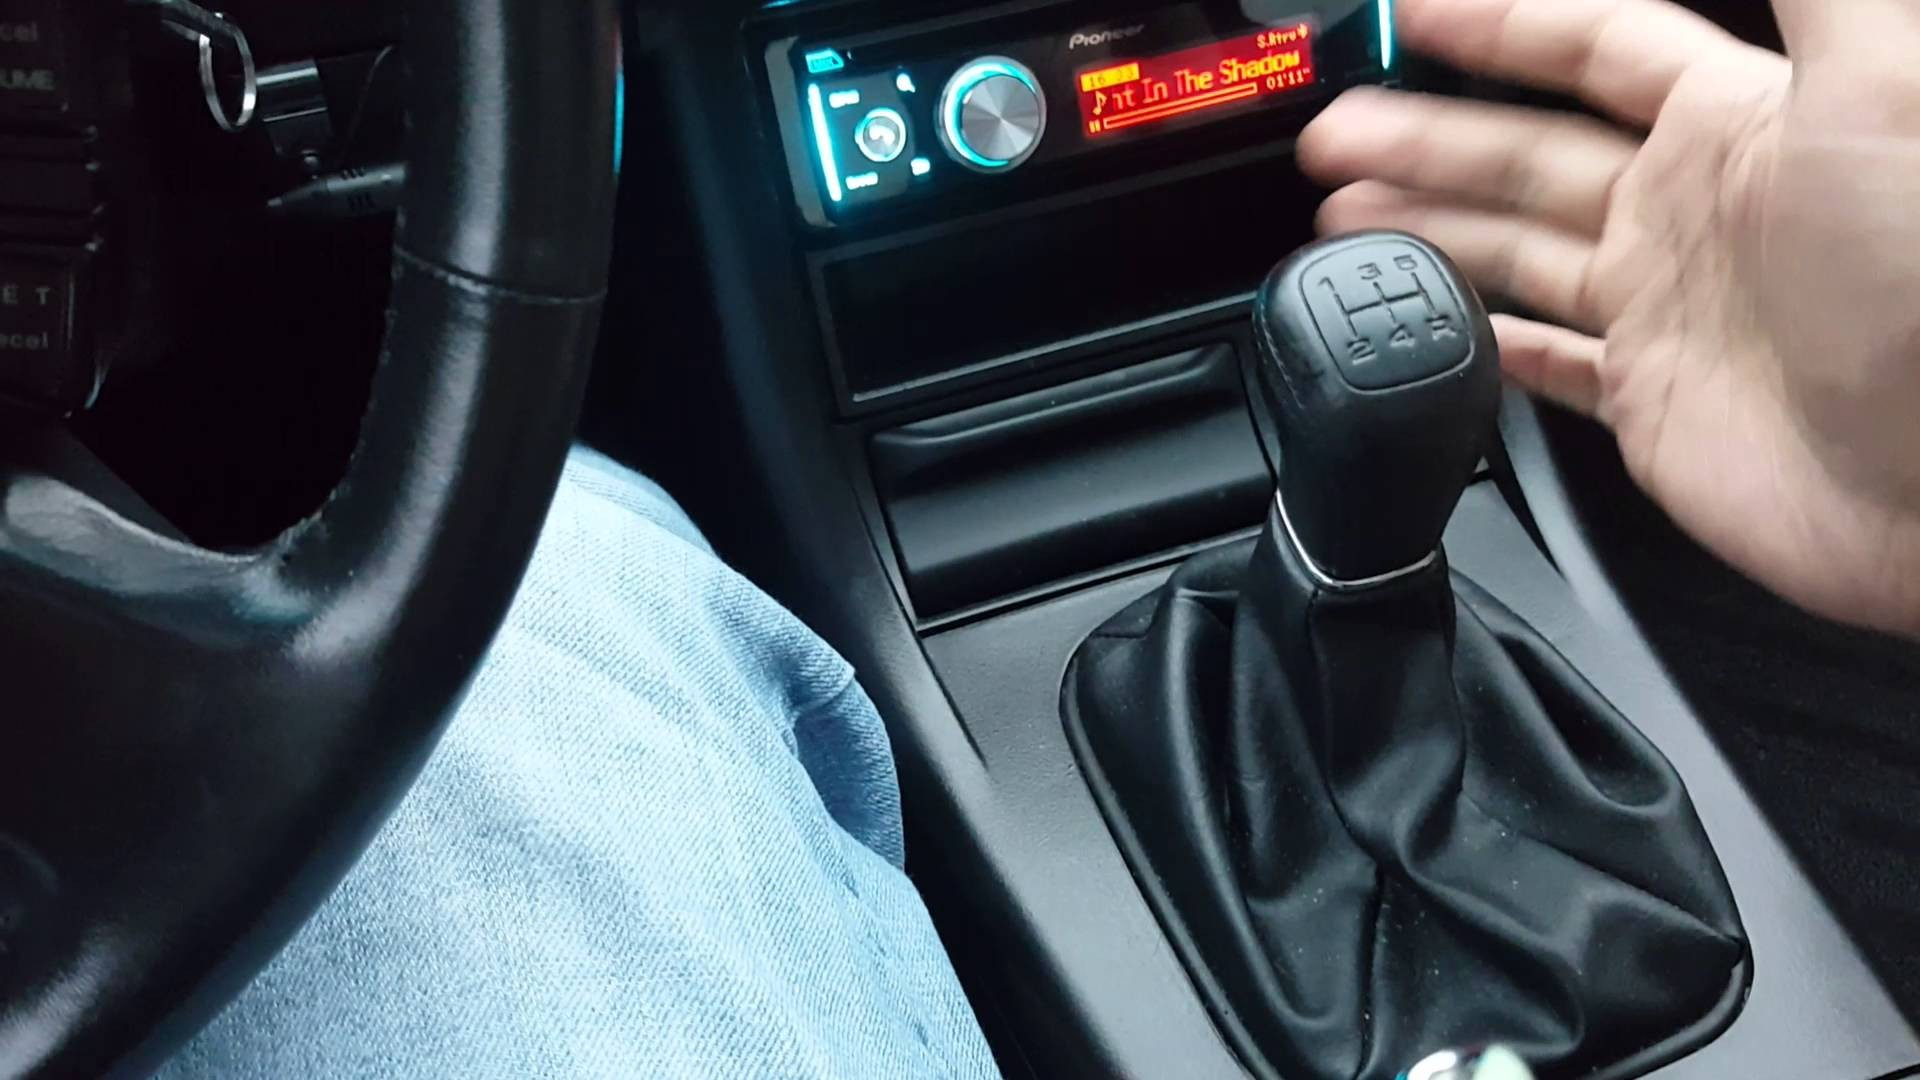 Issues that can occur due to manual gearbox